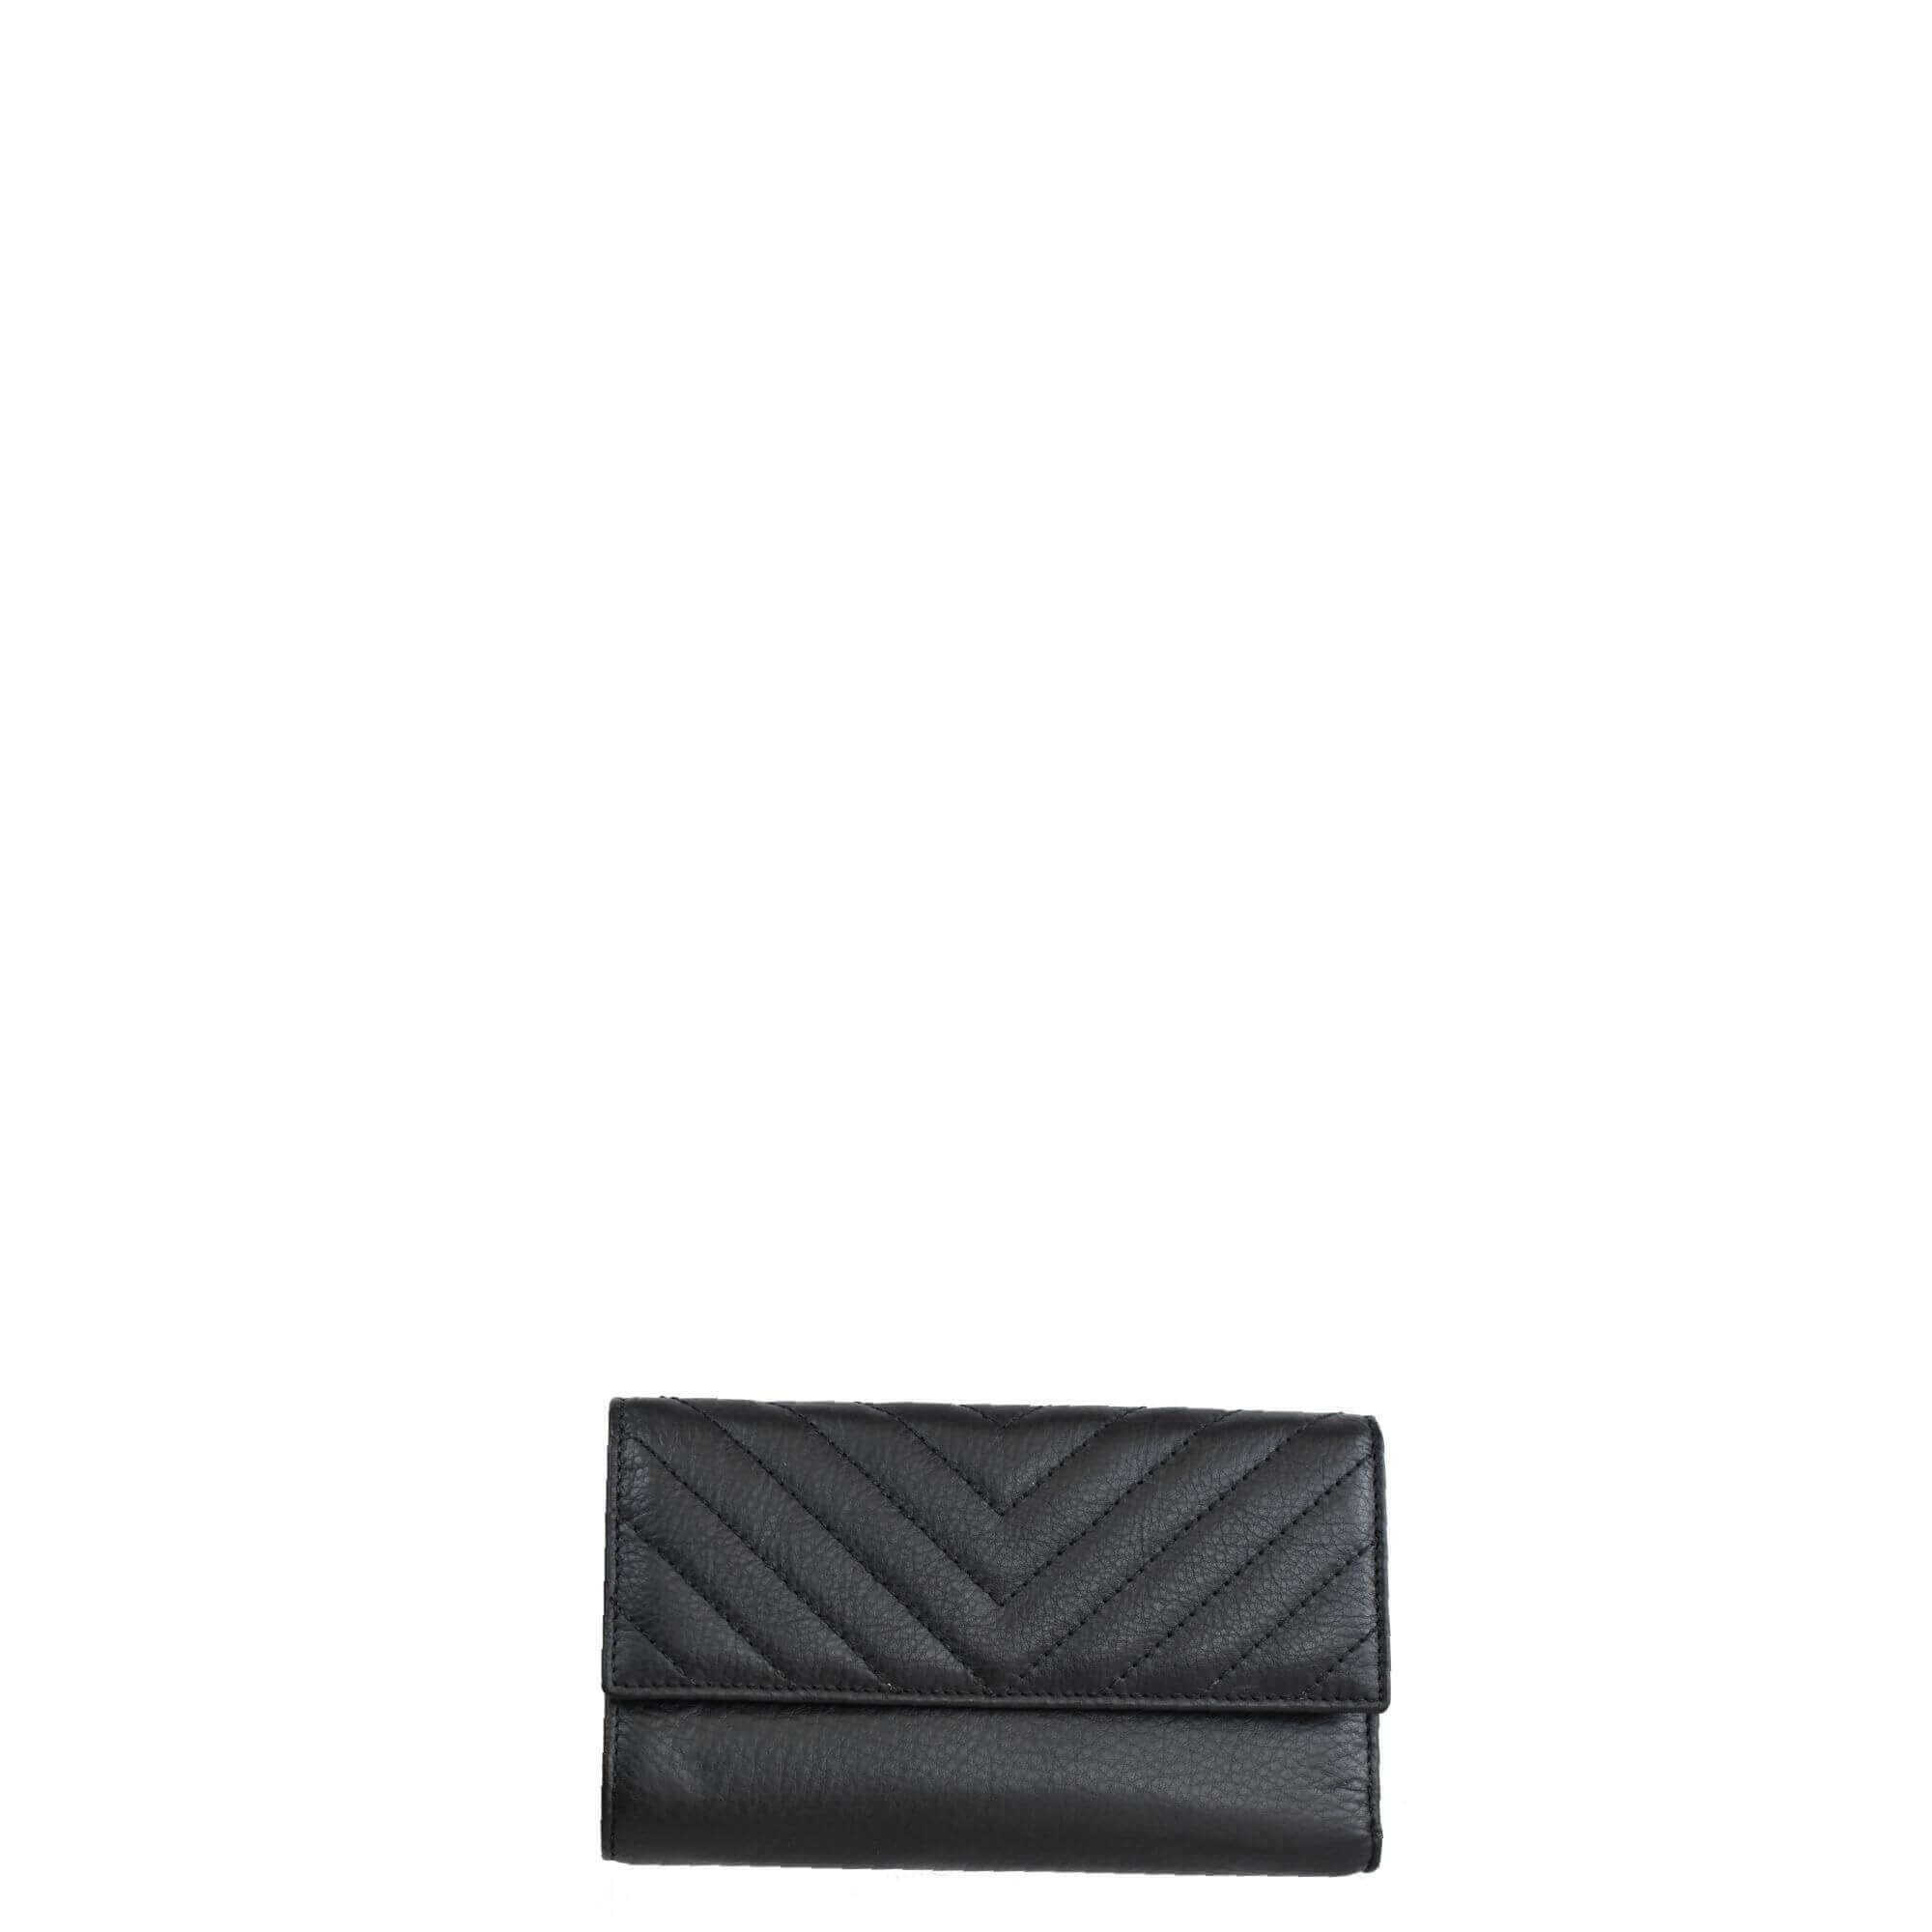 Leather Black Wallet